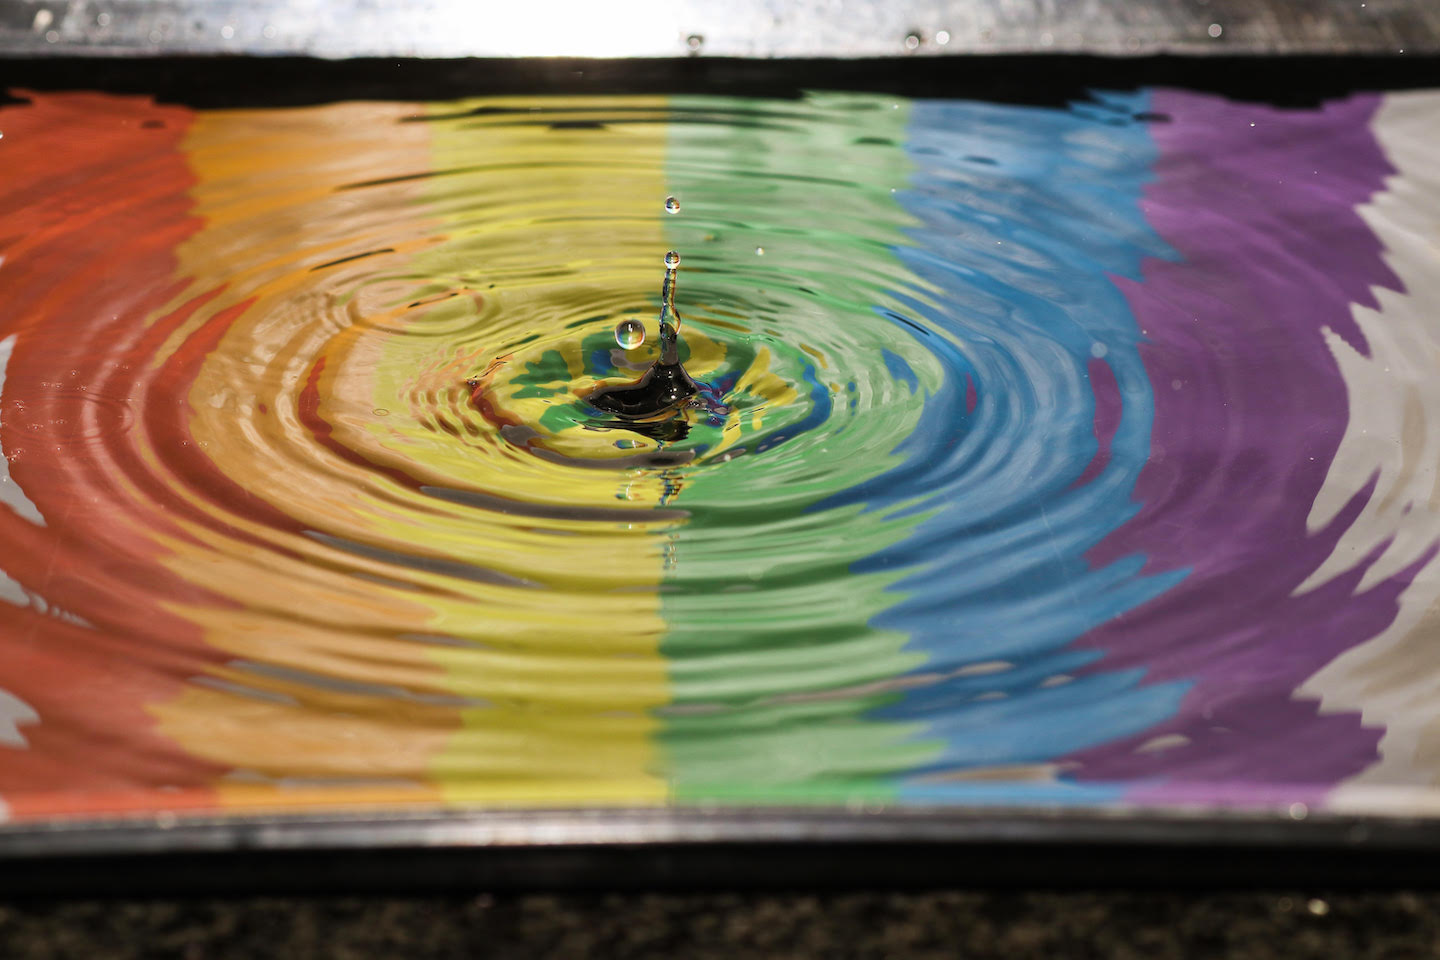 rainbow-water-blog-post-cc0.jpg